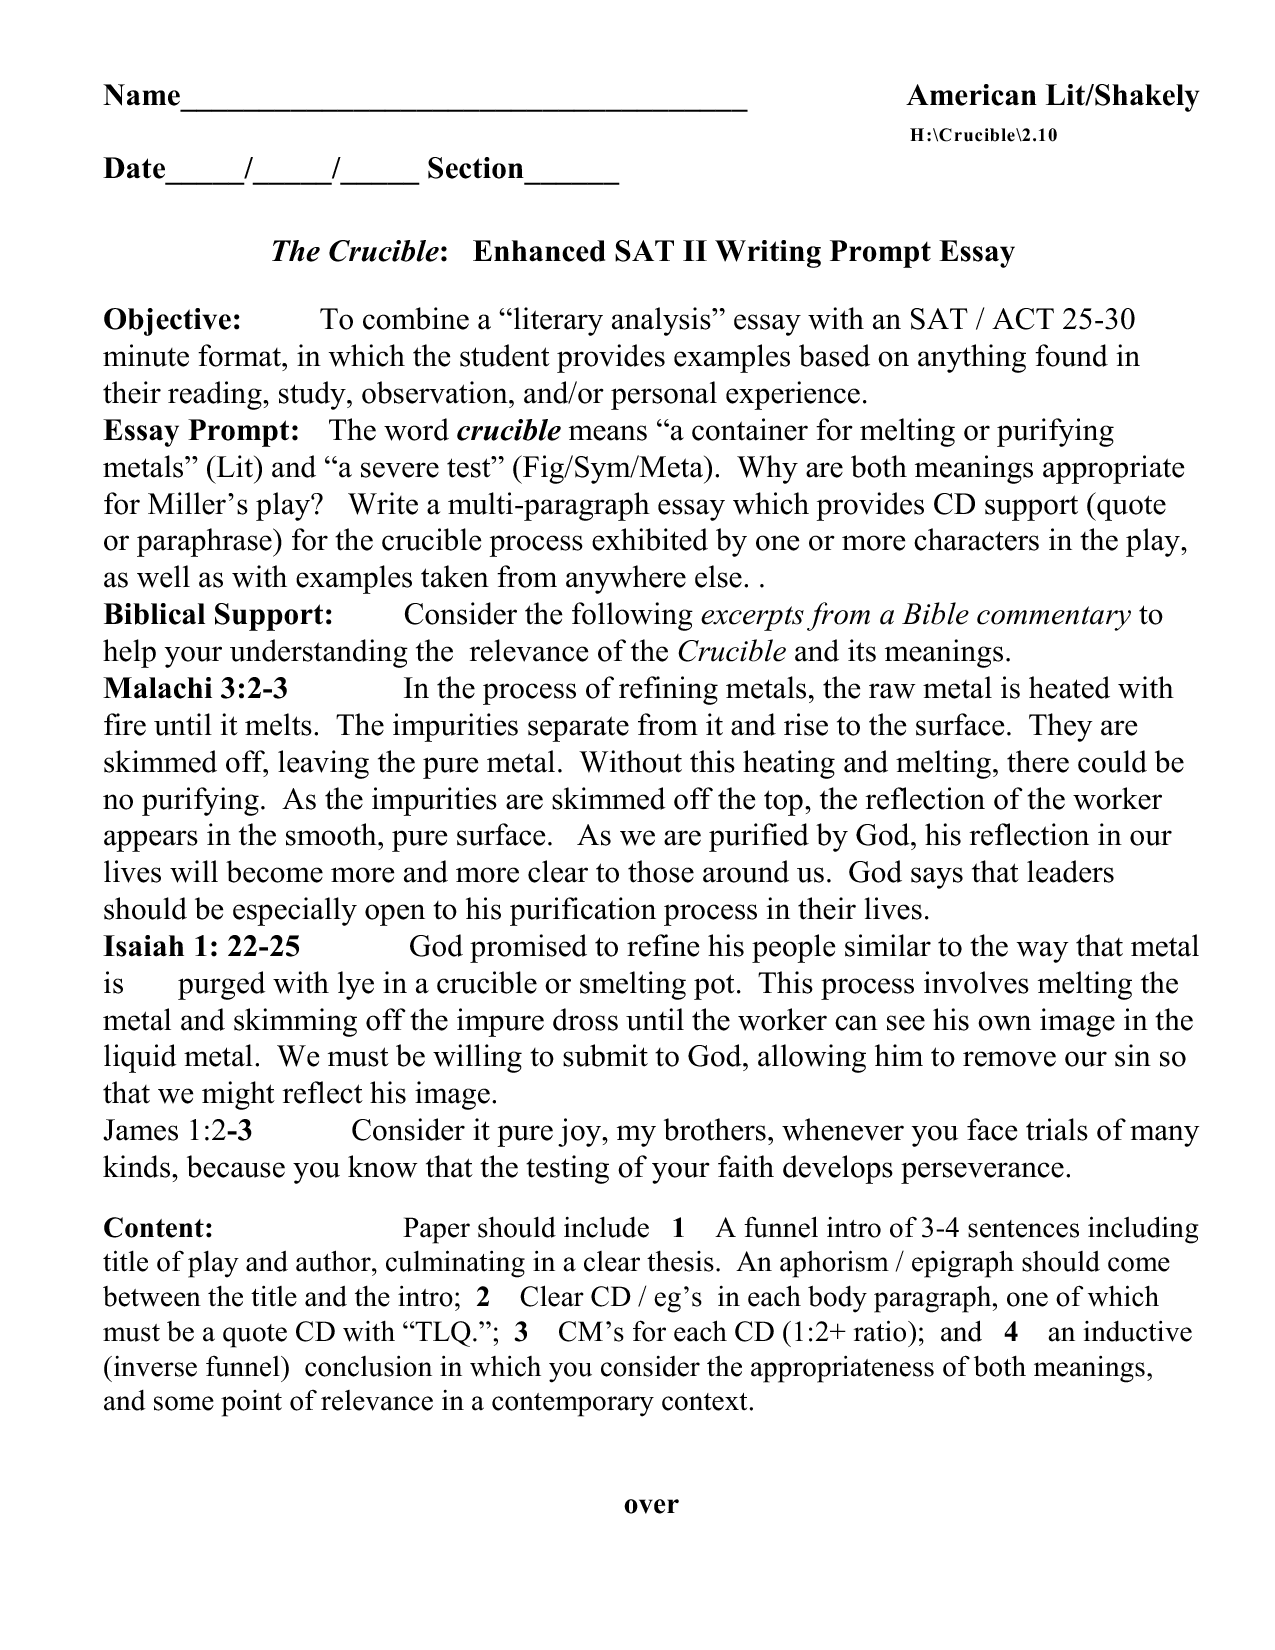 005 Sat Essay Quotes Quotesgram Is There An On The L Sample Astounding Prompts And Responses Pdf Full